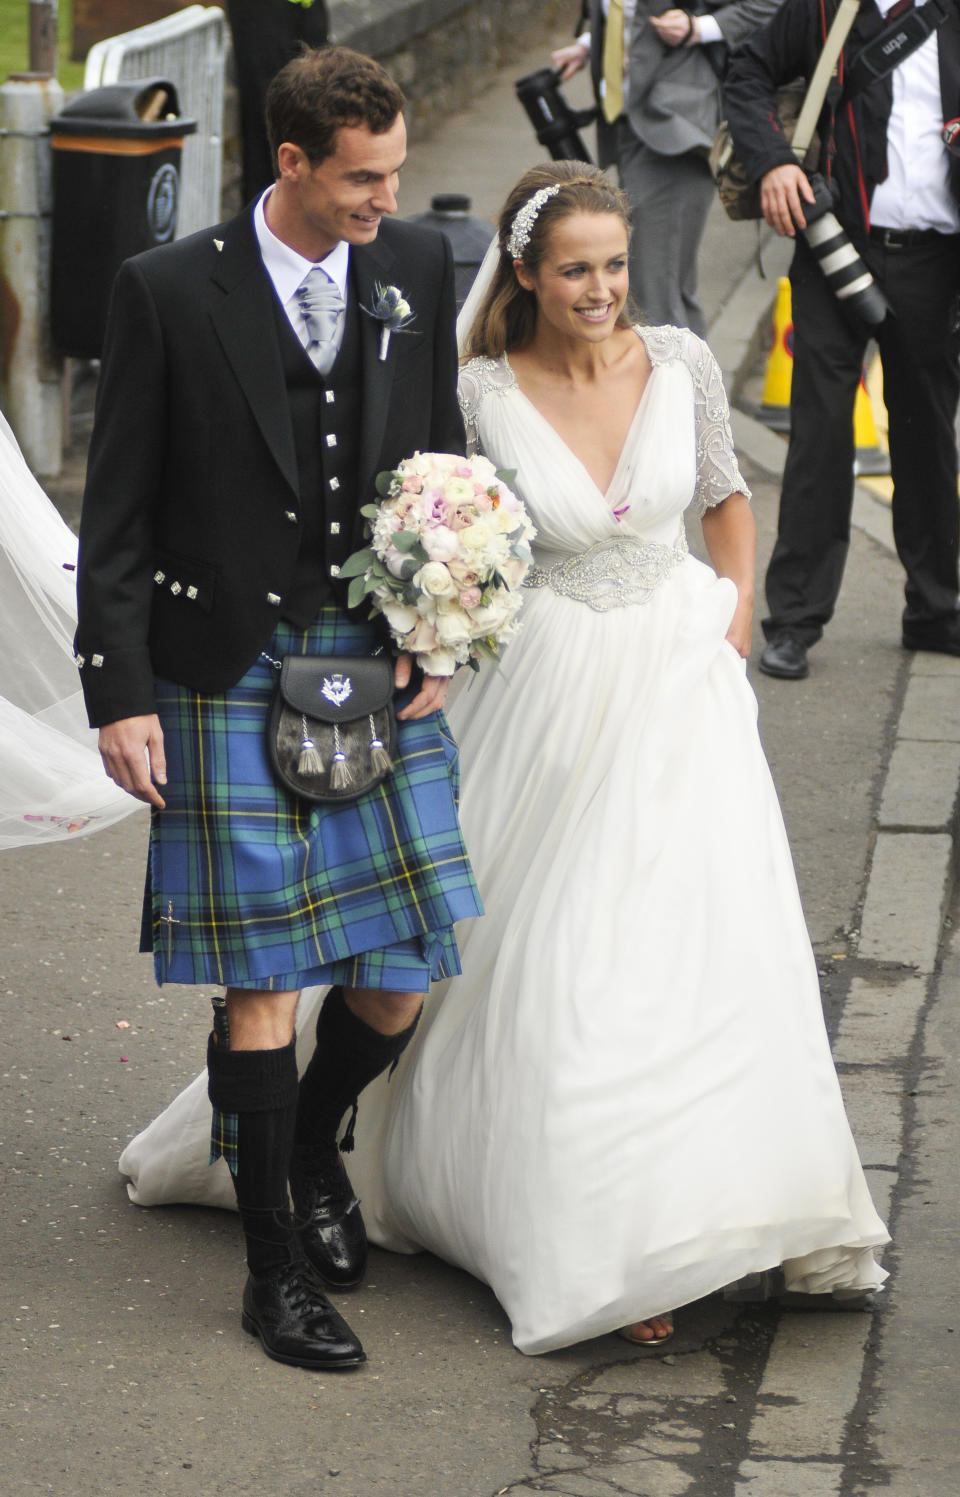 Andy Murray and Kim Sears leave Dunblane Cathedral after their wedding on April 11, 2015 in Dunblane, Scotland. (Photo by Martin Fraser/WireImage)